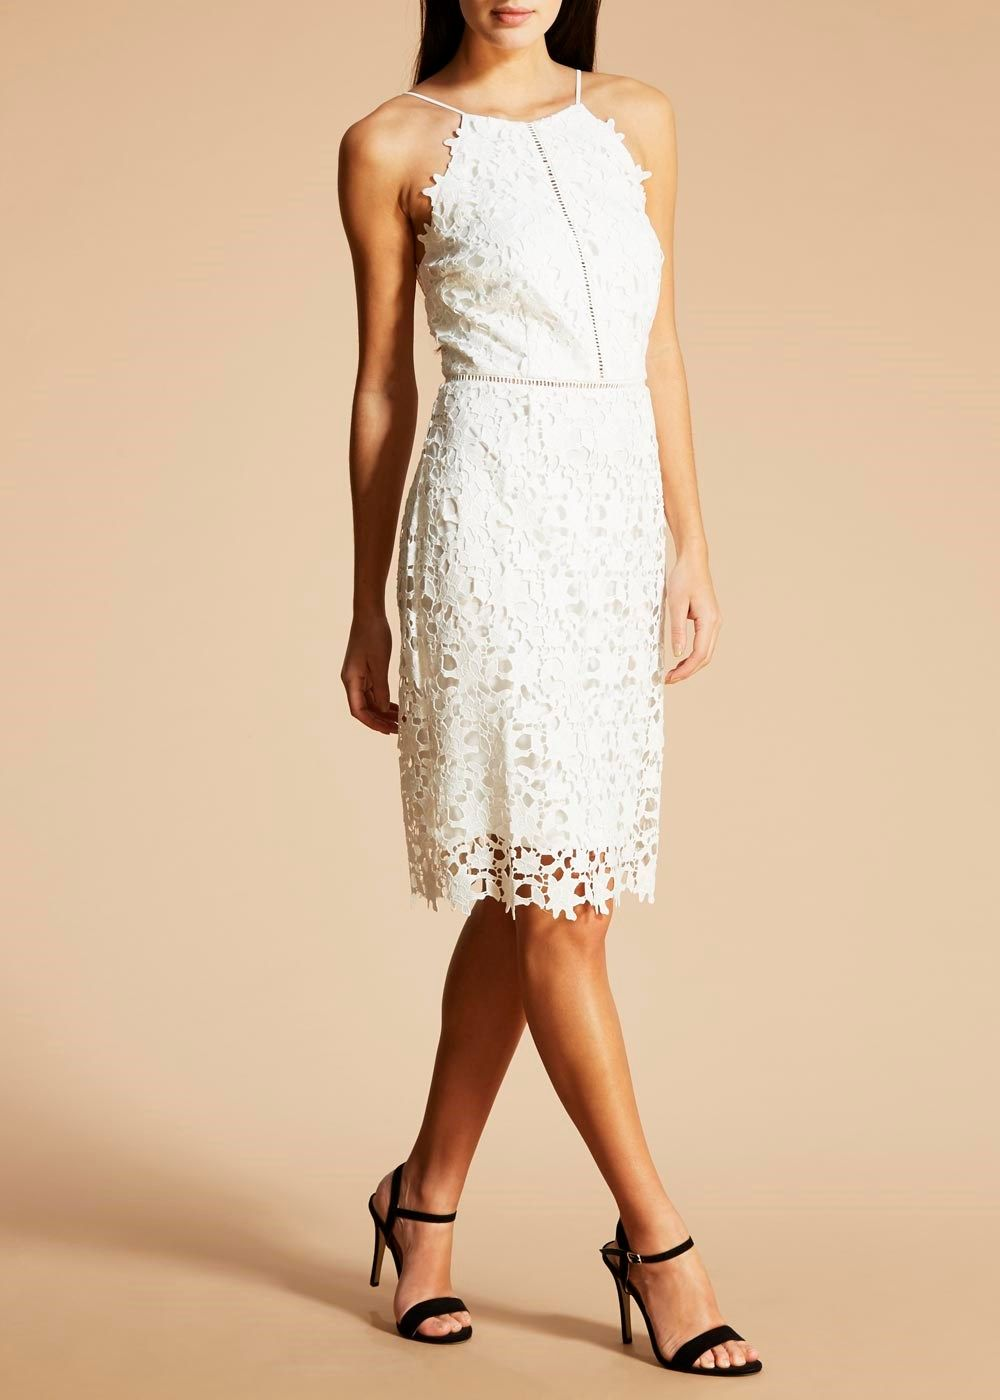 FWM Lace Halterneck Dress – Matalan | Pinterest | Occasion wear ...